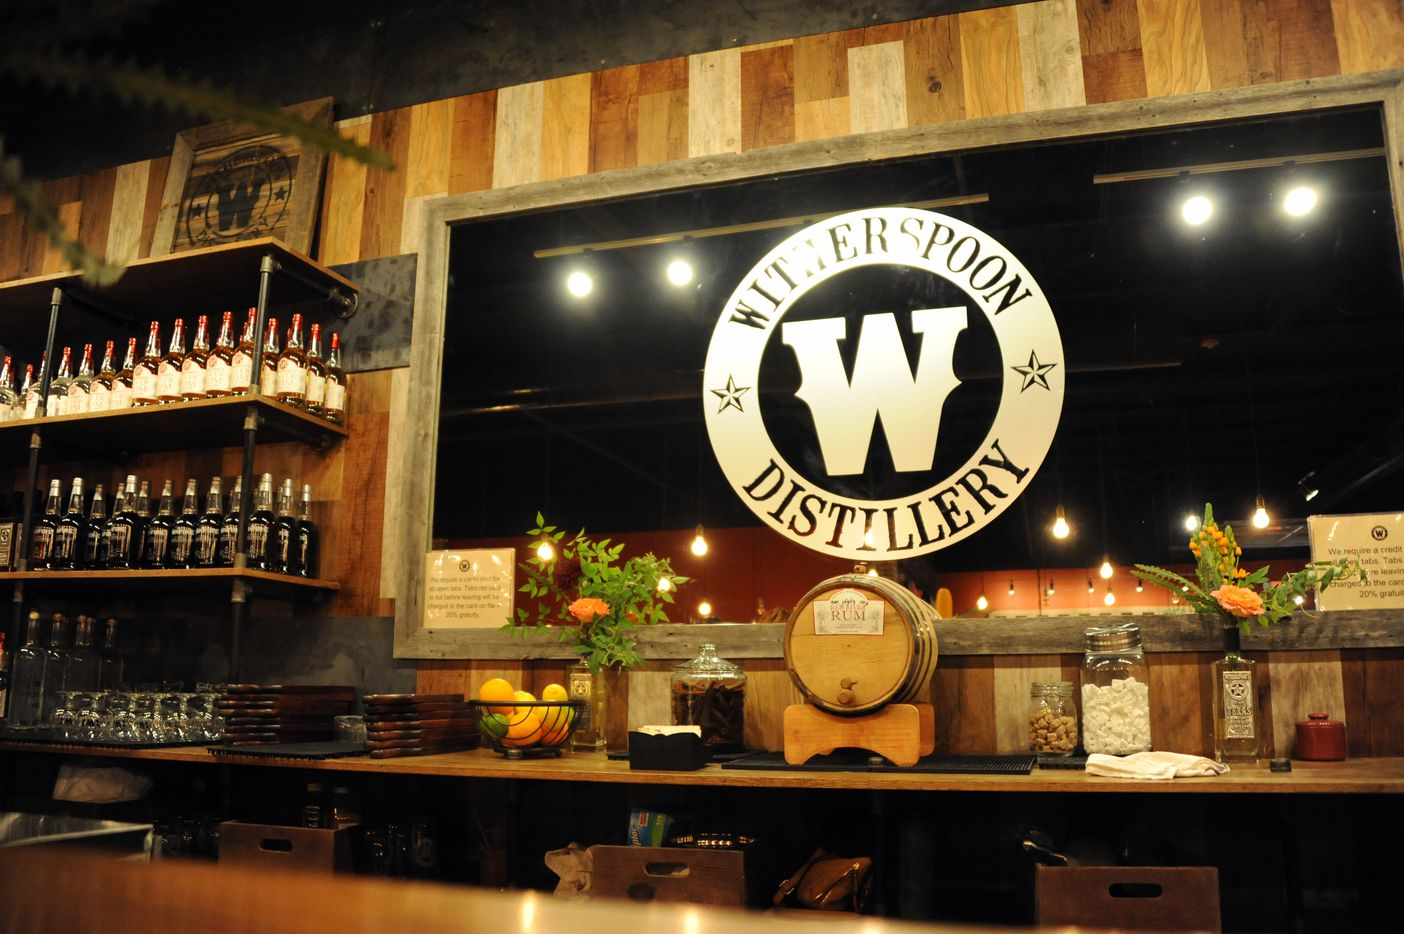 The bar features rum and bourbon at Witherspoon Distillery in Lewisville, TX on October 24, 2015.